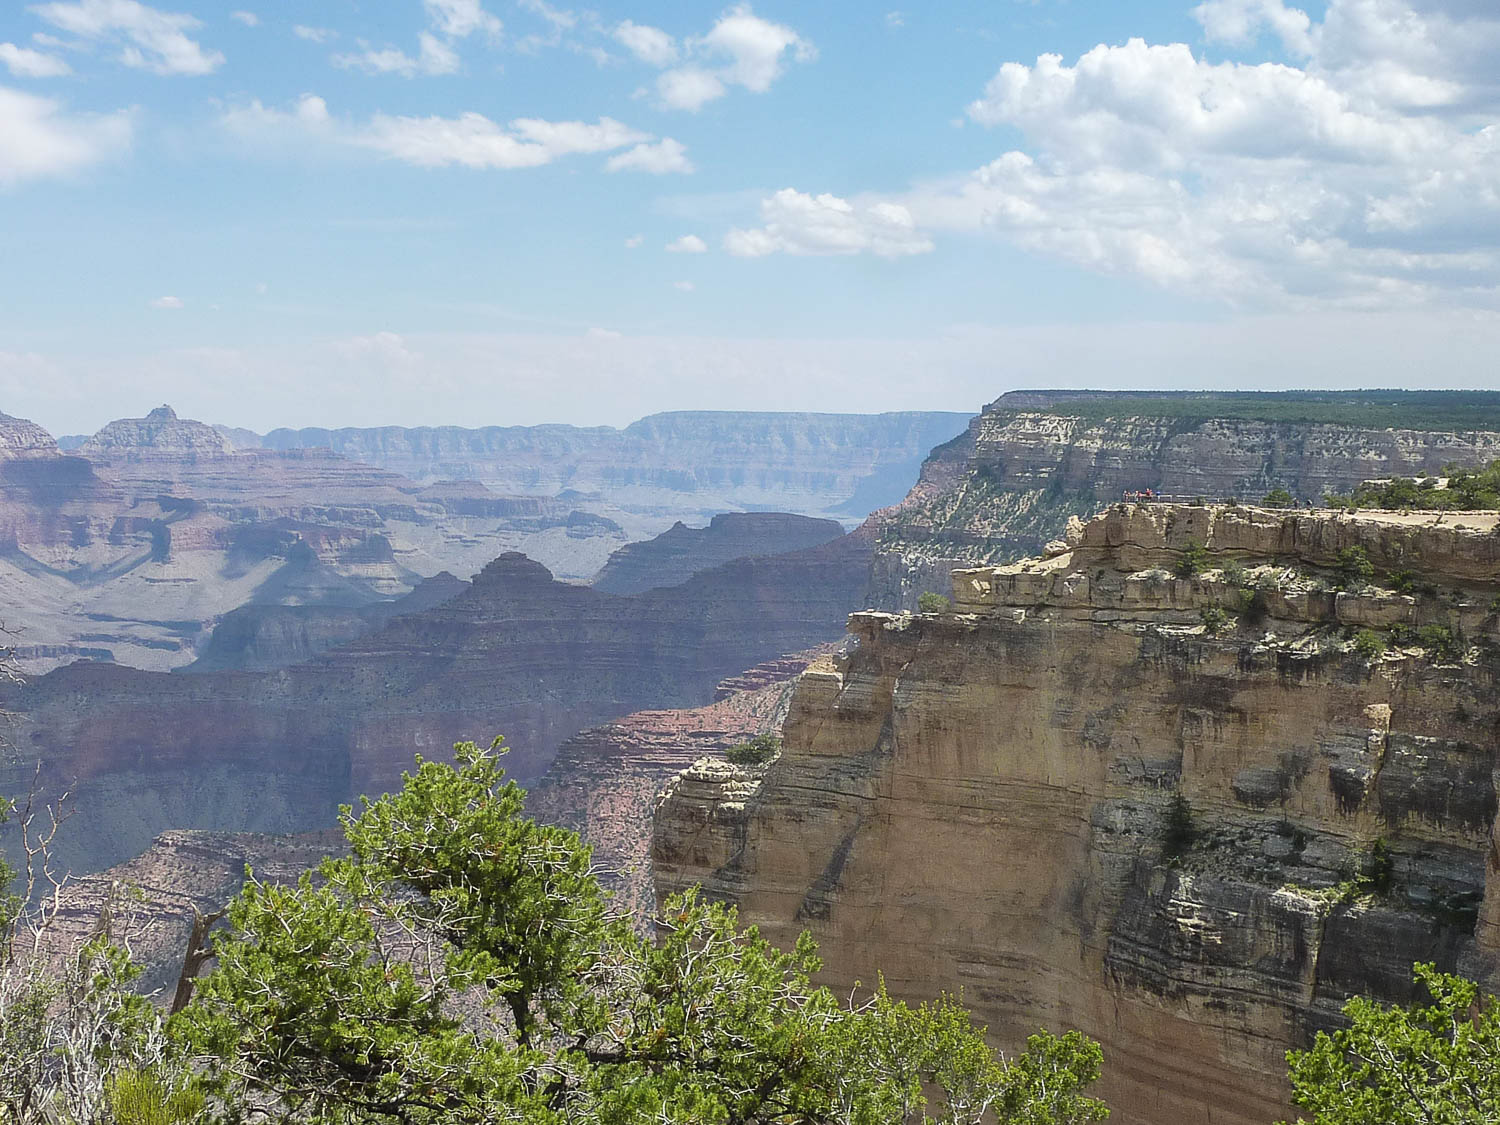 Balade dans le Grand Canyon